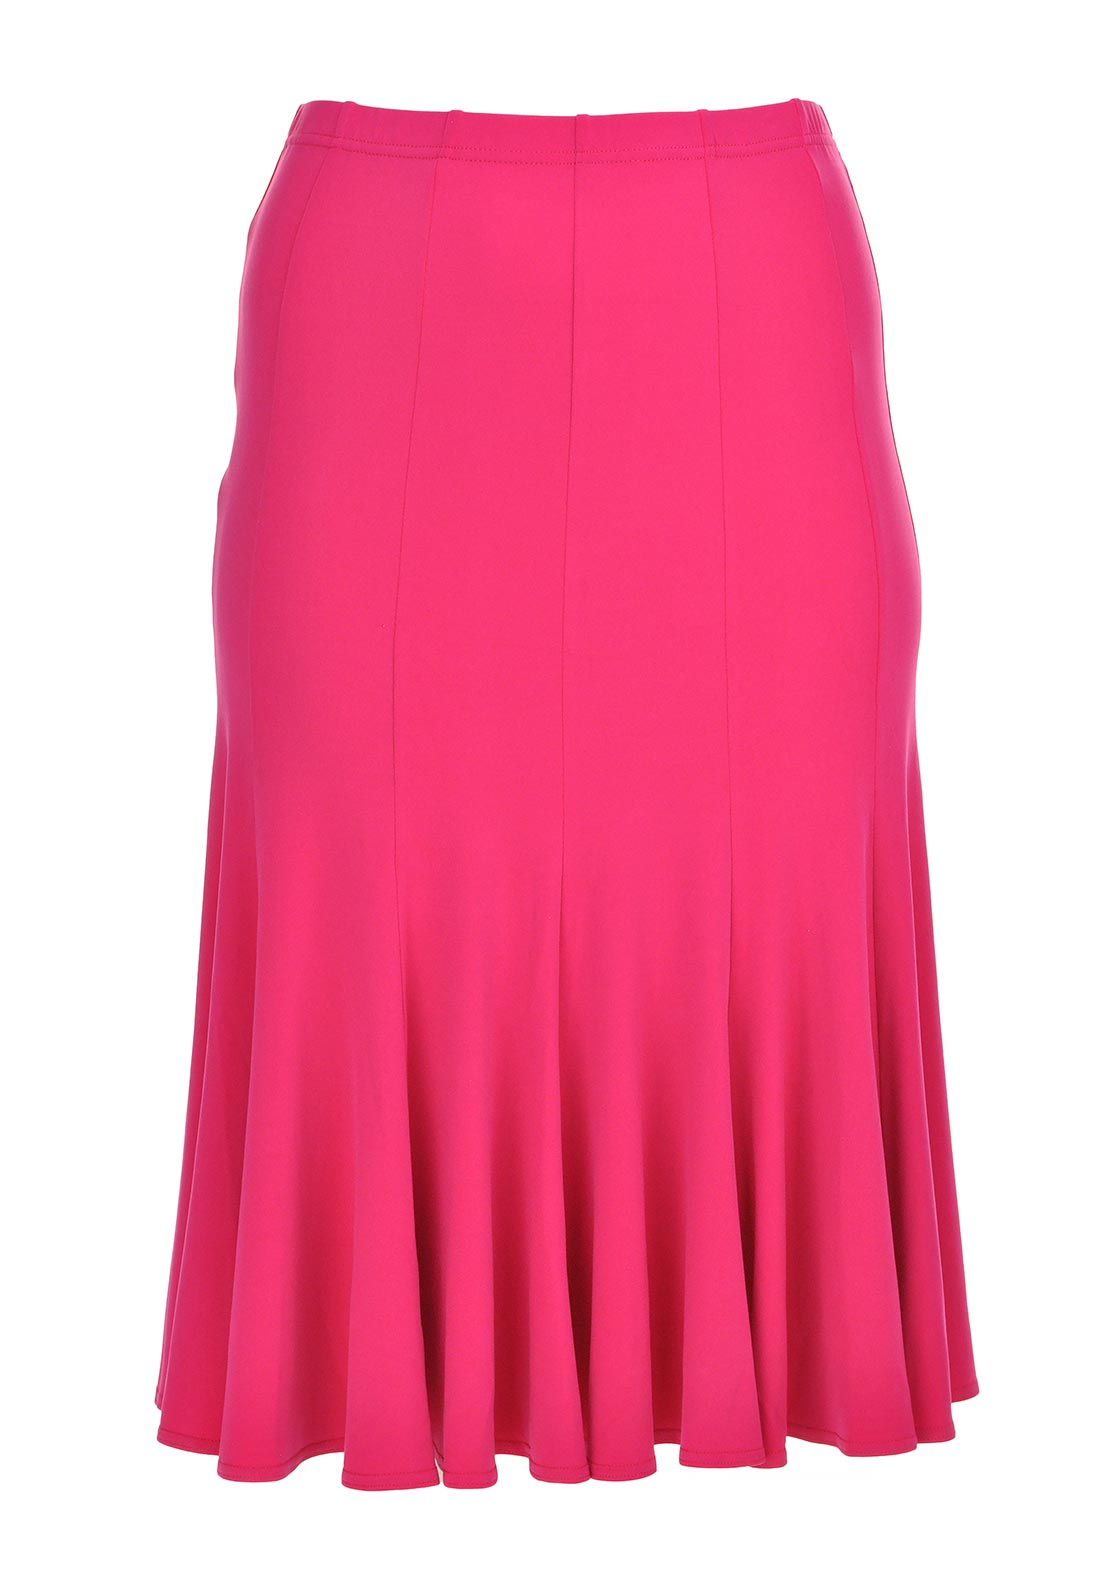 Georgede A-Line Midi Length Skirt, Fuschia Pink